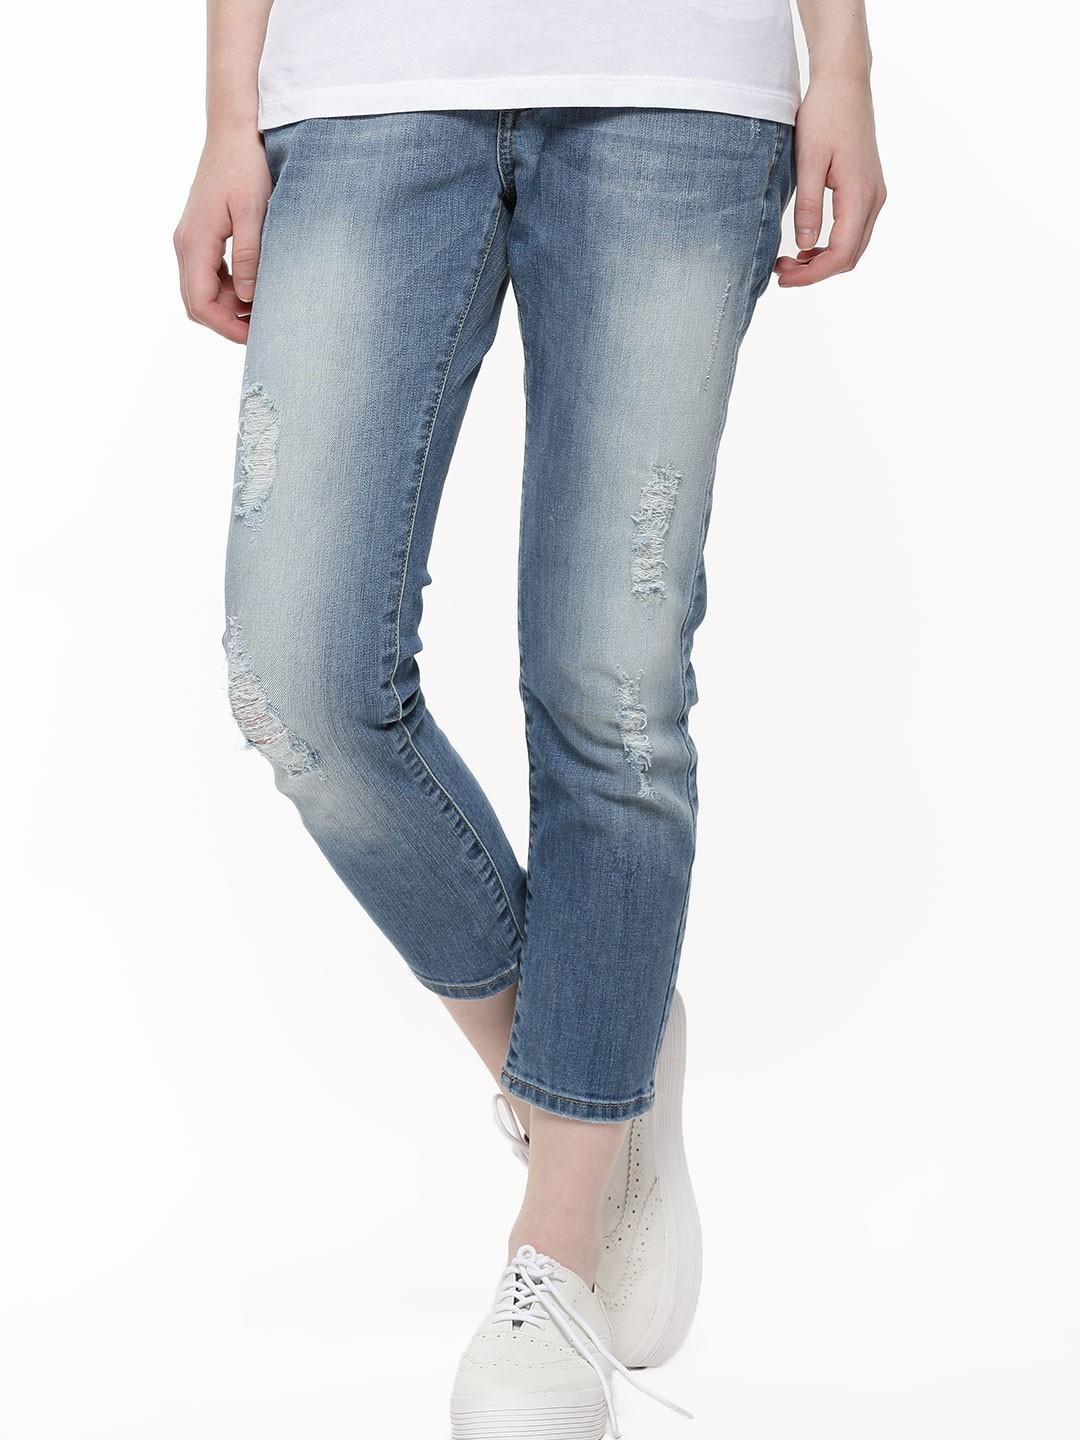 buy vero moda ripped jeans for women women 39 s blue straight jeans online in india. Black Bedroom Furniture Sets. Home Design Ideas